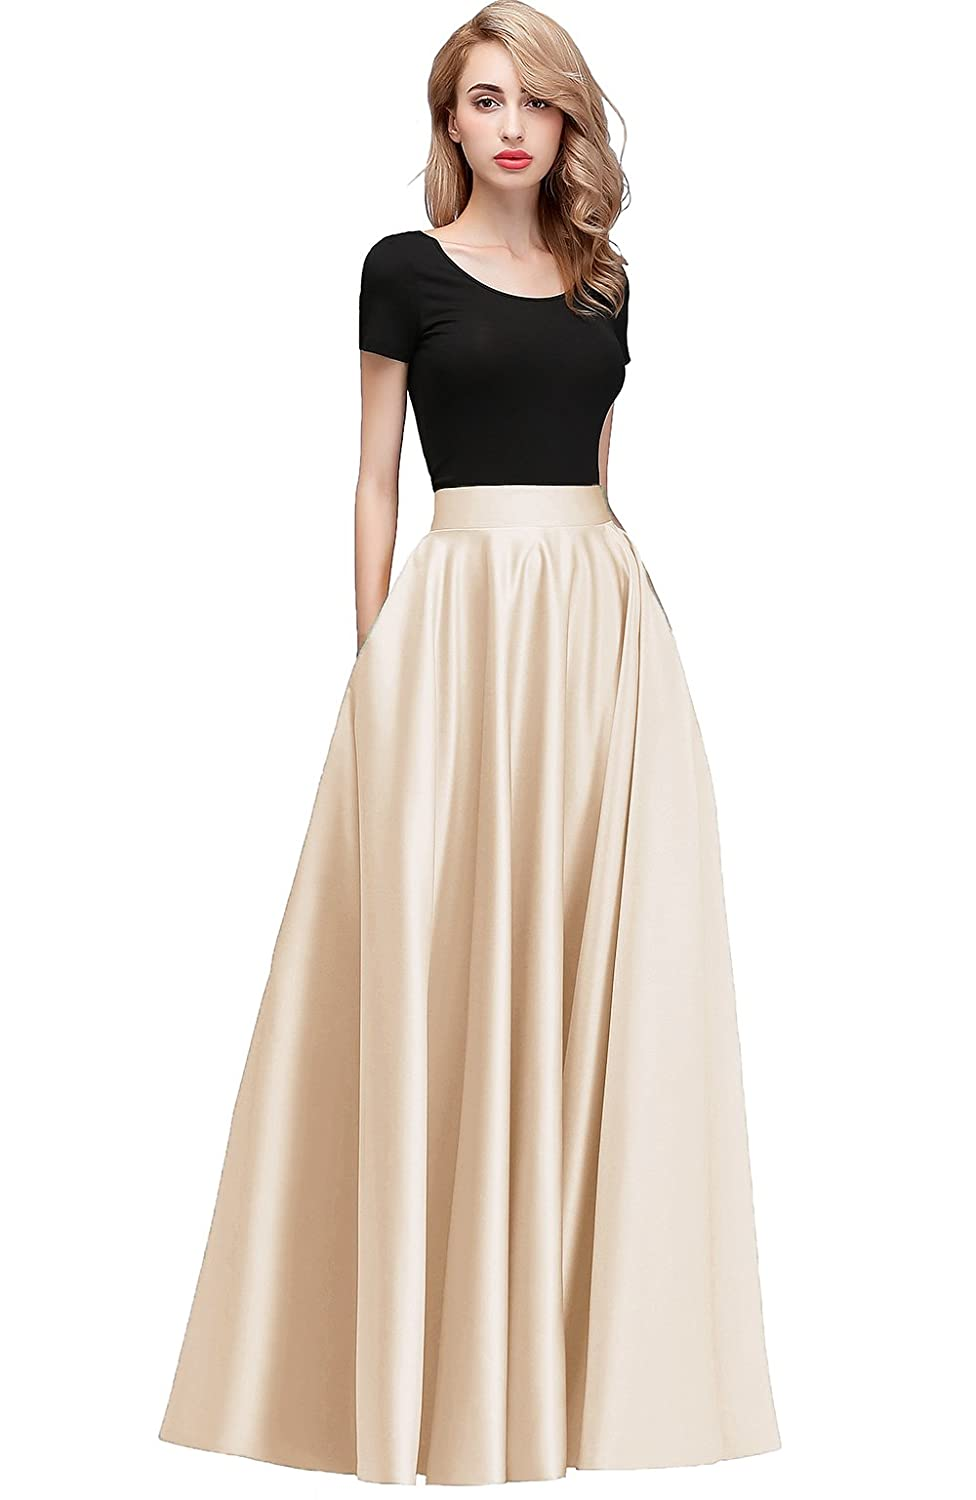 42ced3a13c Honey Qiao Women's Satin Long Floor Length High Waist Fomal Prom Party  Skirts with Pockets,Back Zipper Closure